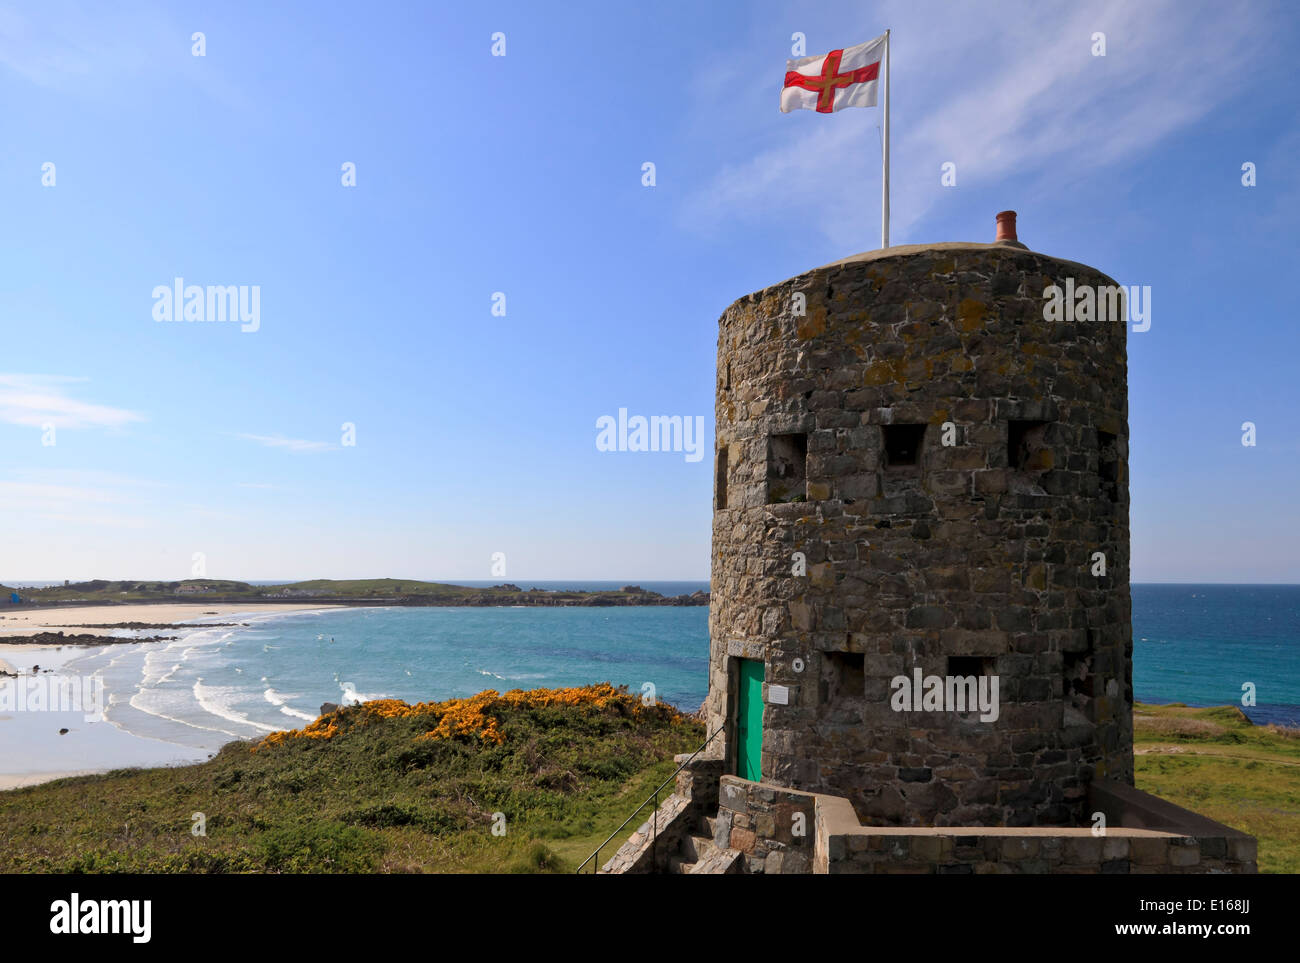 9155. L'Ancress Bay & Watch Tower, Guernsey, Channel Islands, UK, Europe - Stock Image